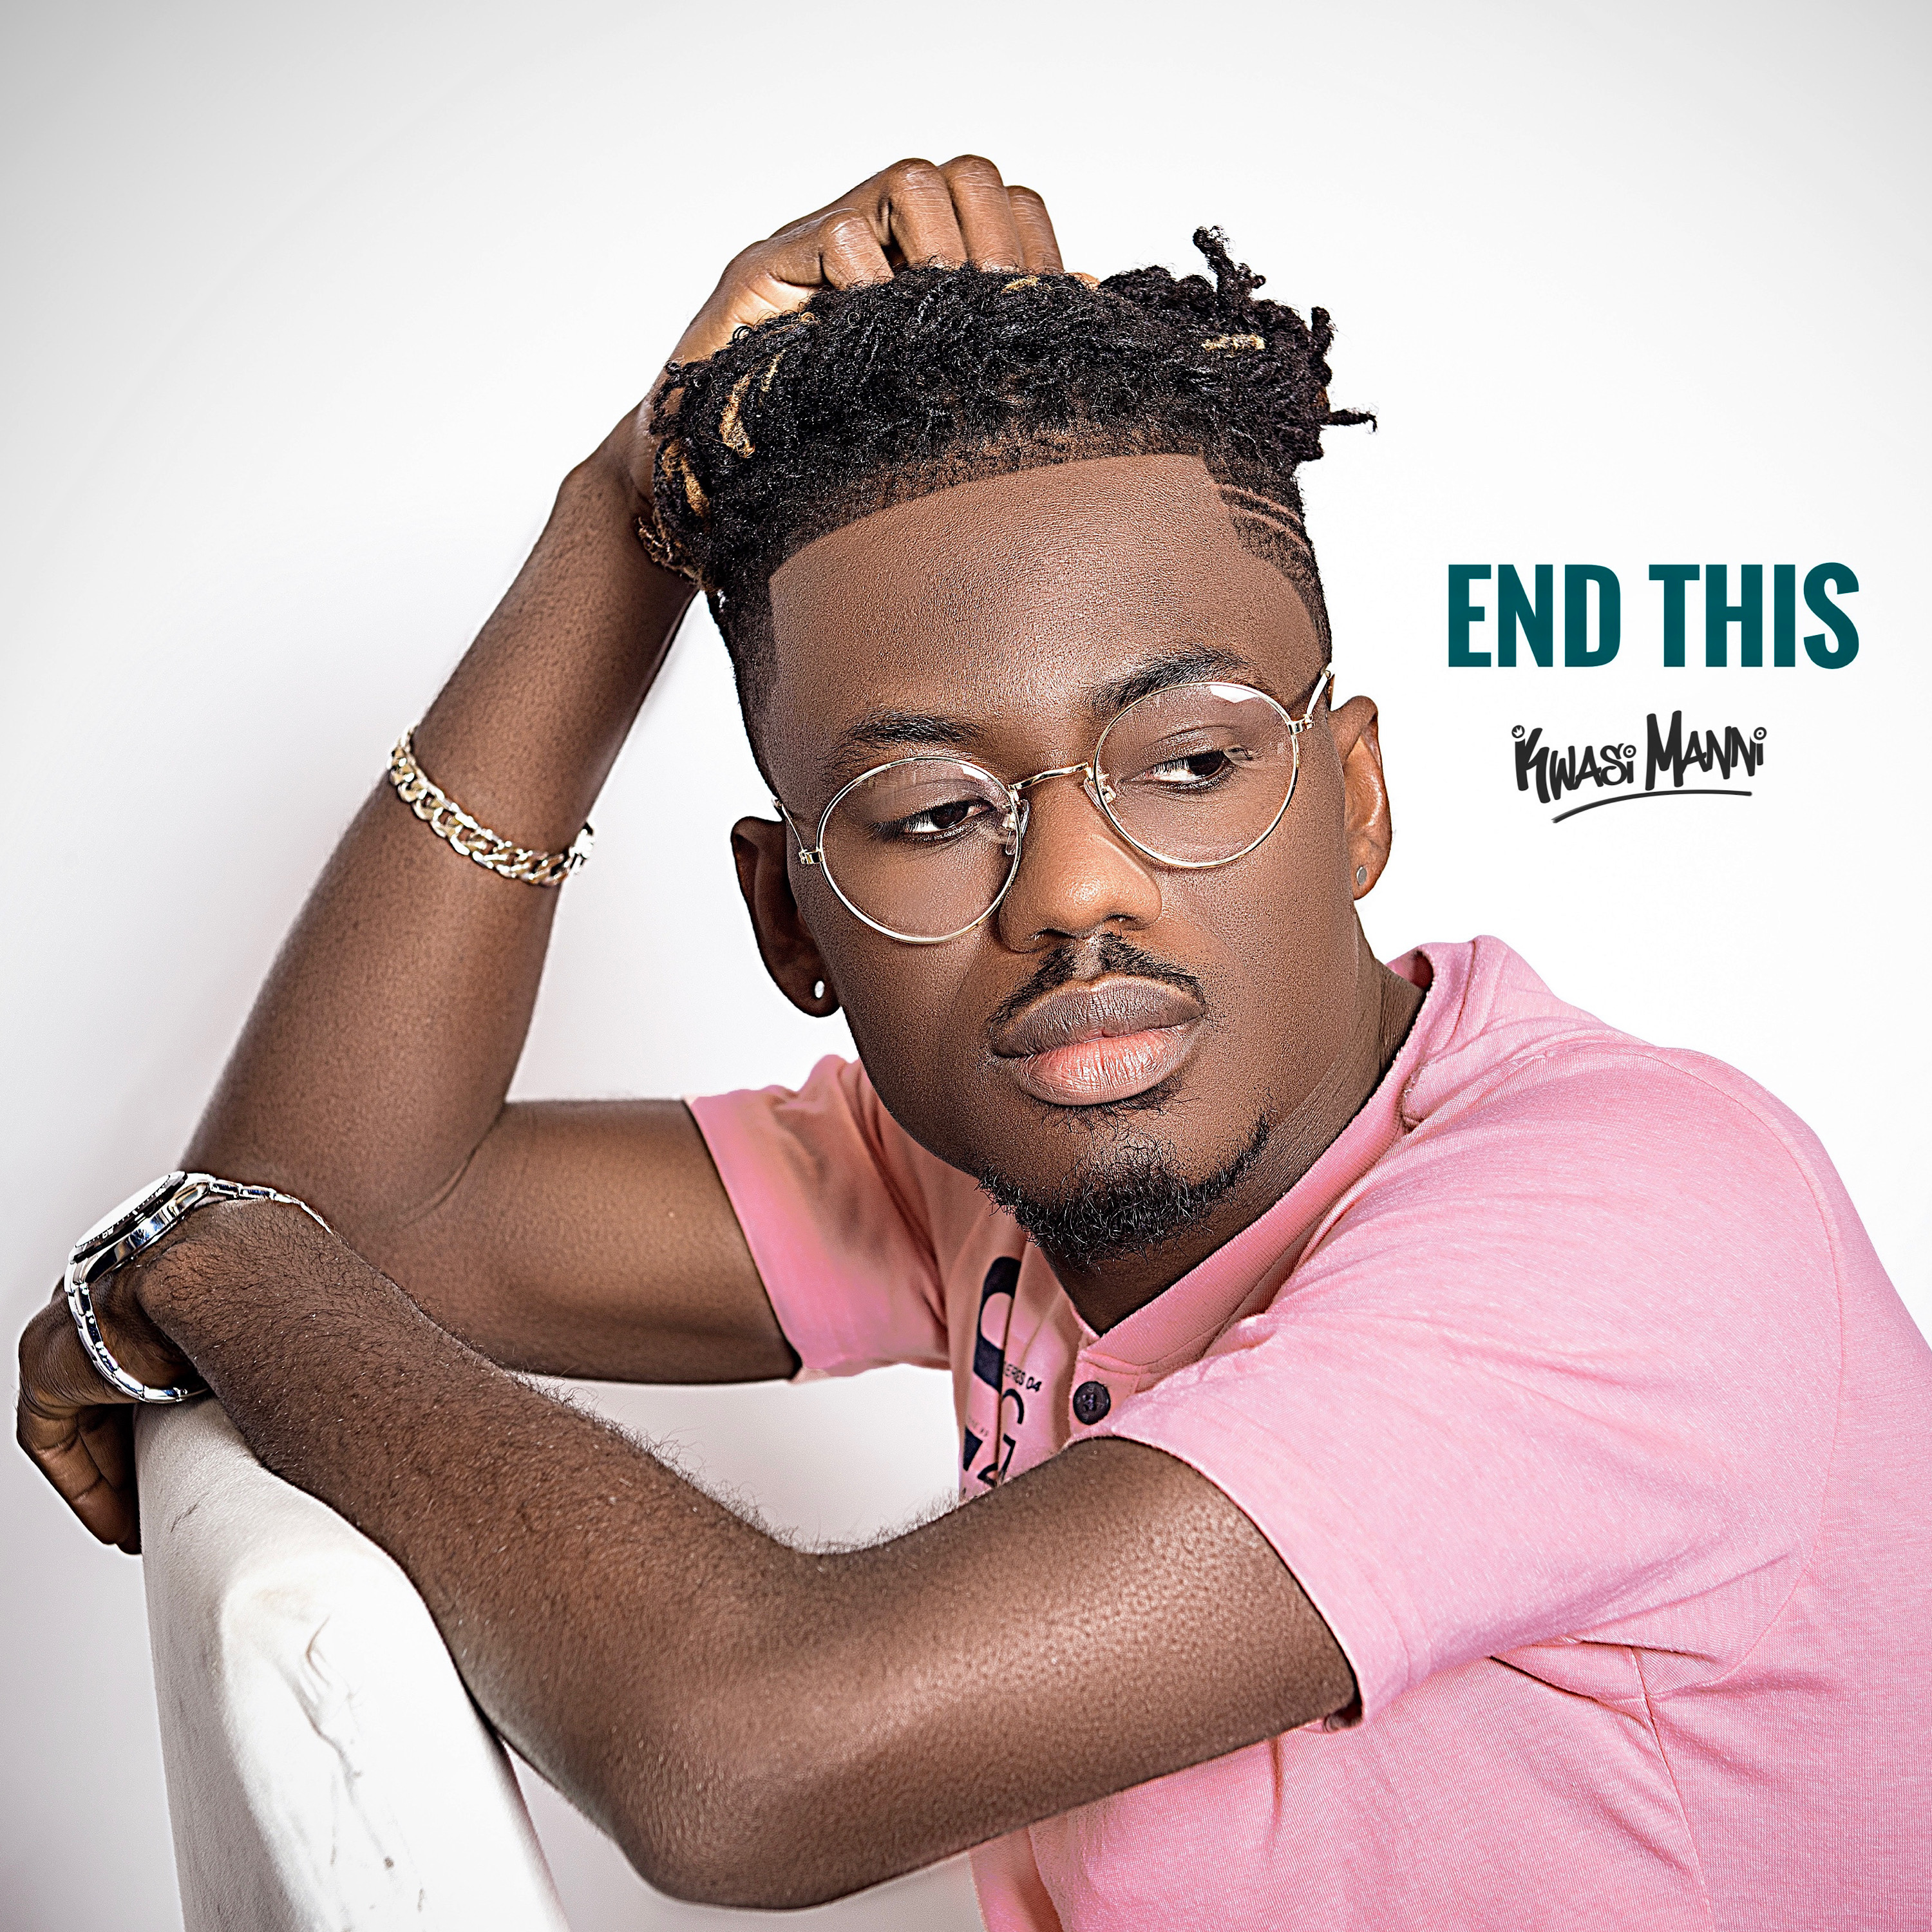 Artist Kwasi Manni Releases A New Single